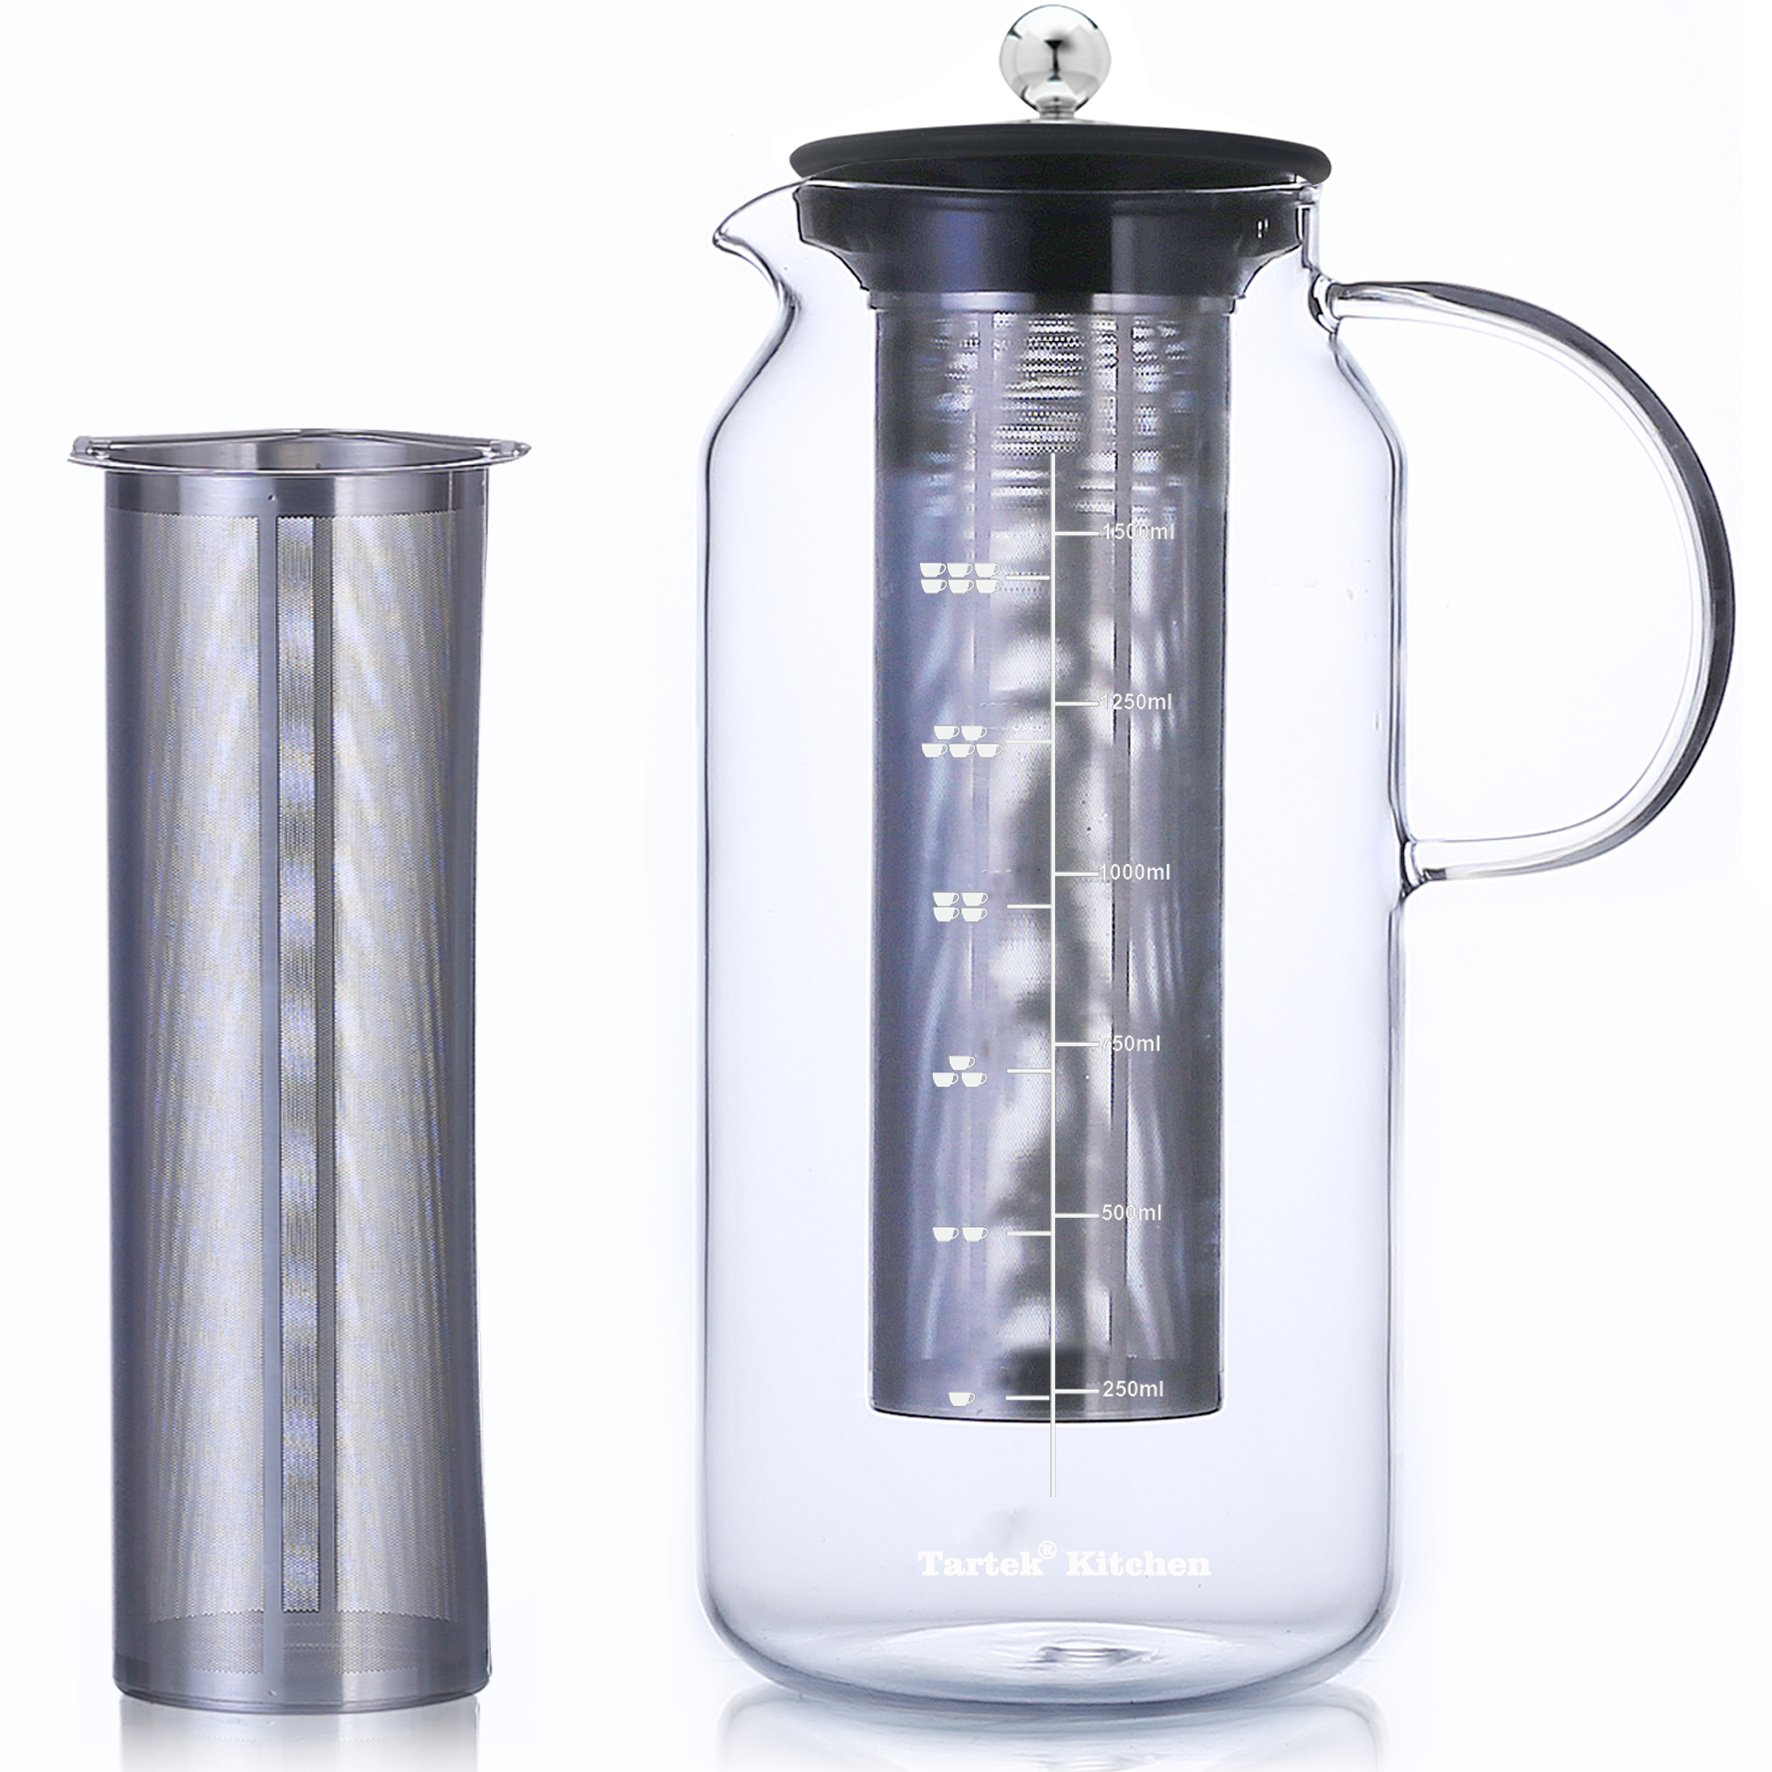 Large Glass Teapot with Infuser & Cold Brew Iced Coffee Maker -50oz/1.5L - Glass Pitcher with Removable Stainless Steel Filter - Stovetop & Freezer Safe - Coffee & Tea Brew Recipe Includ by Tartek